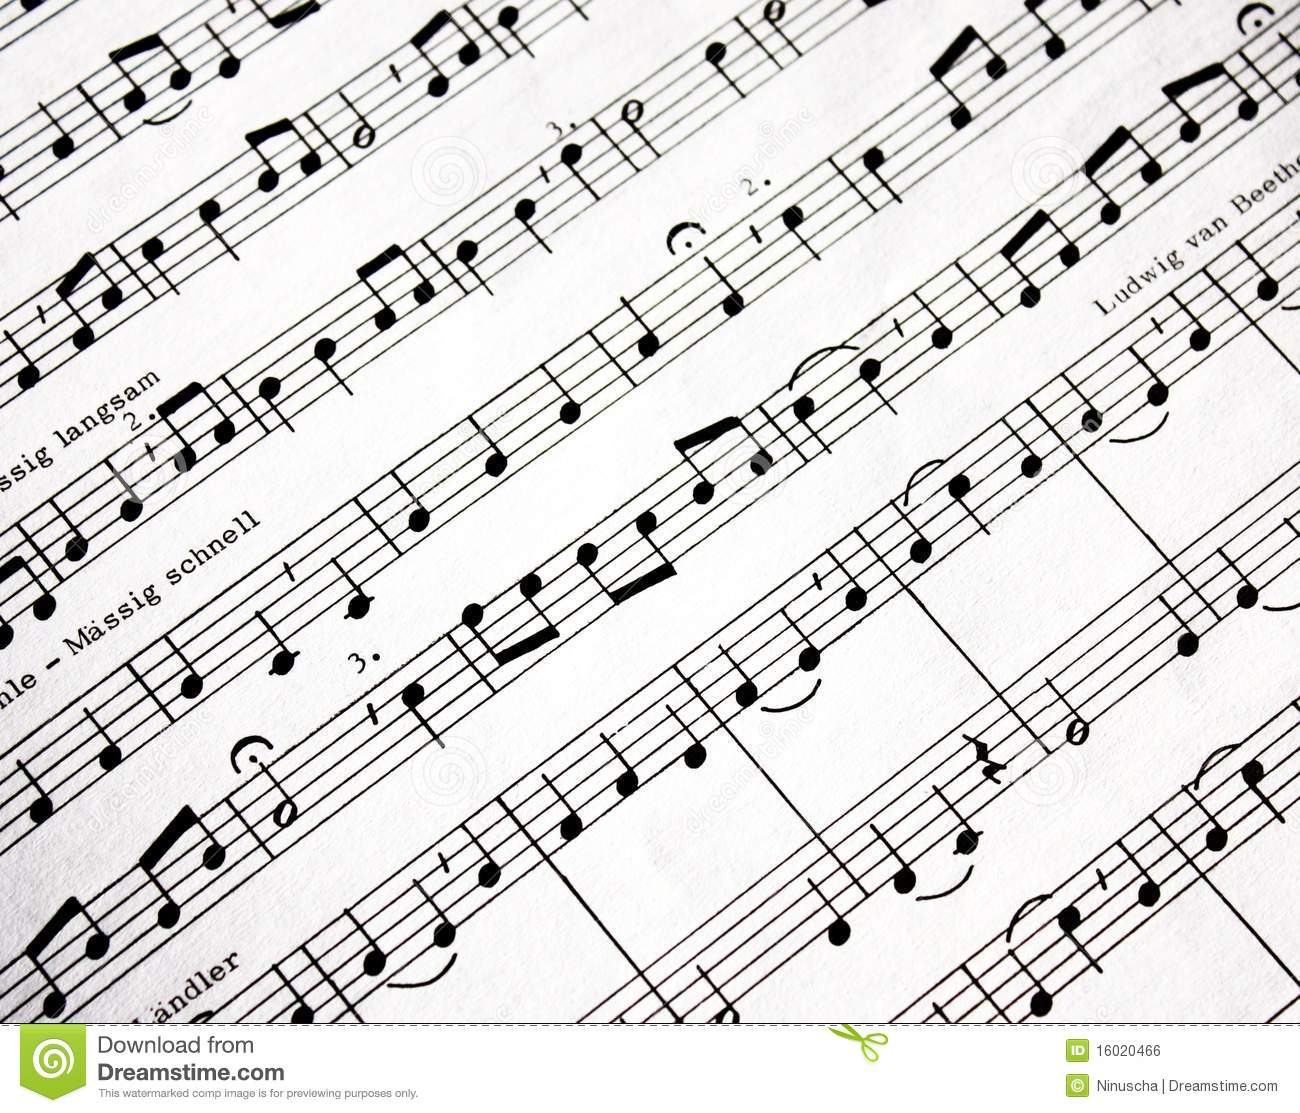 Music notes stock photo. Image of musical, graphic, line